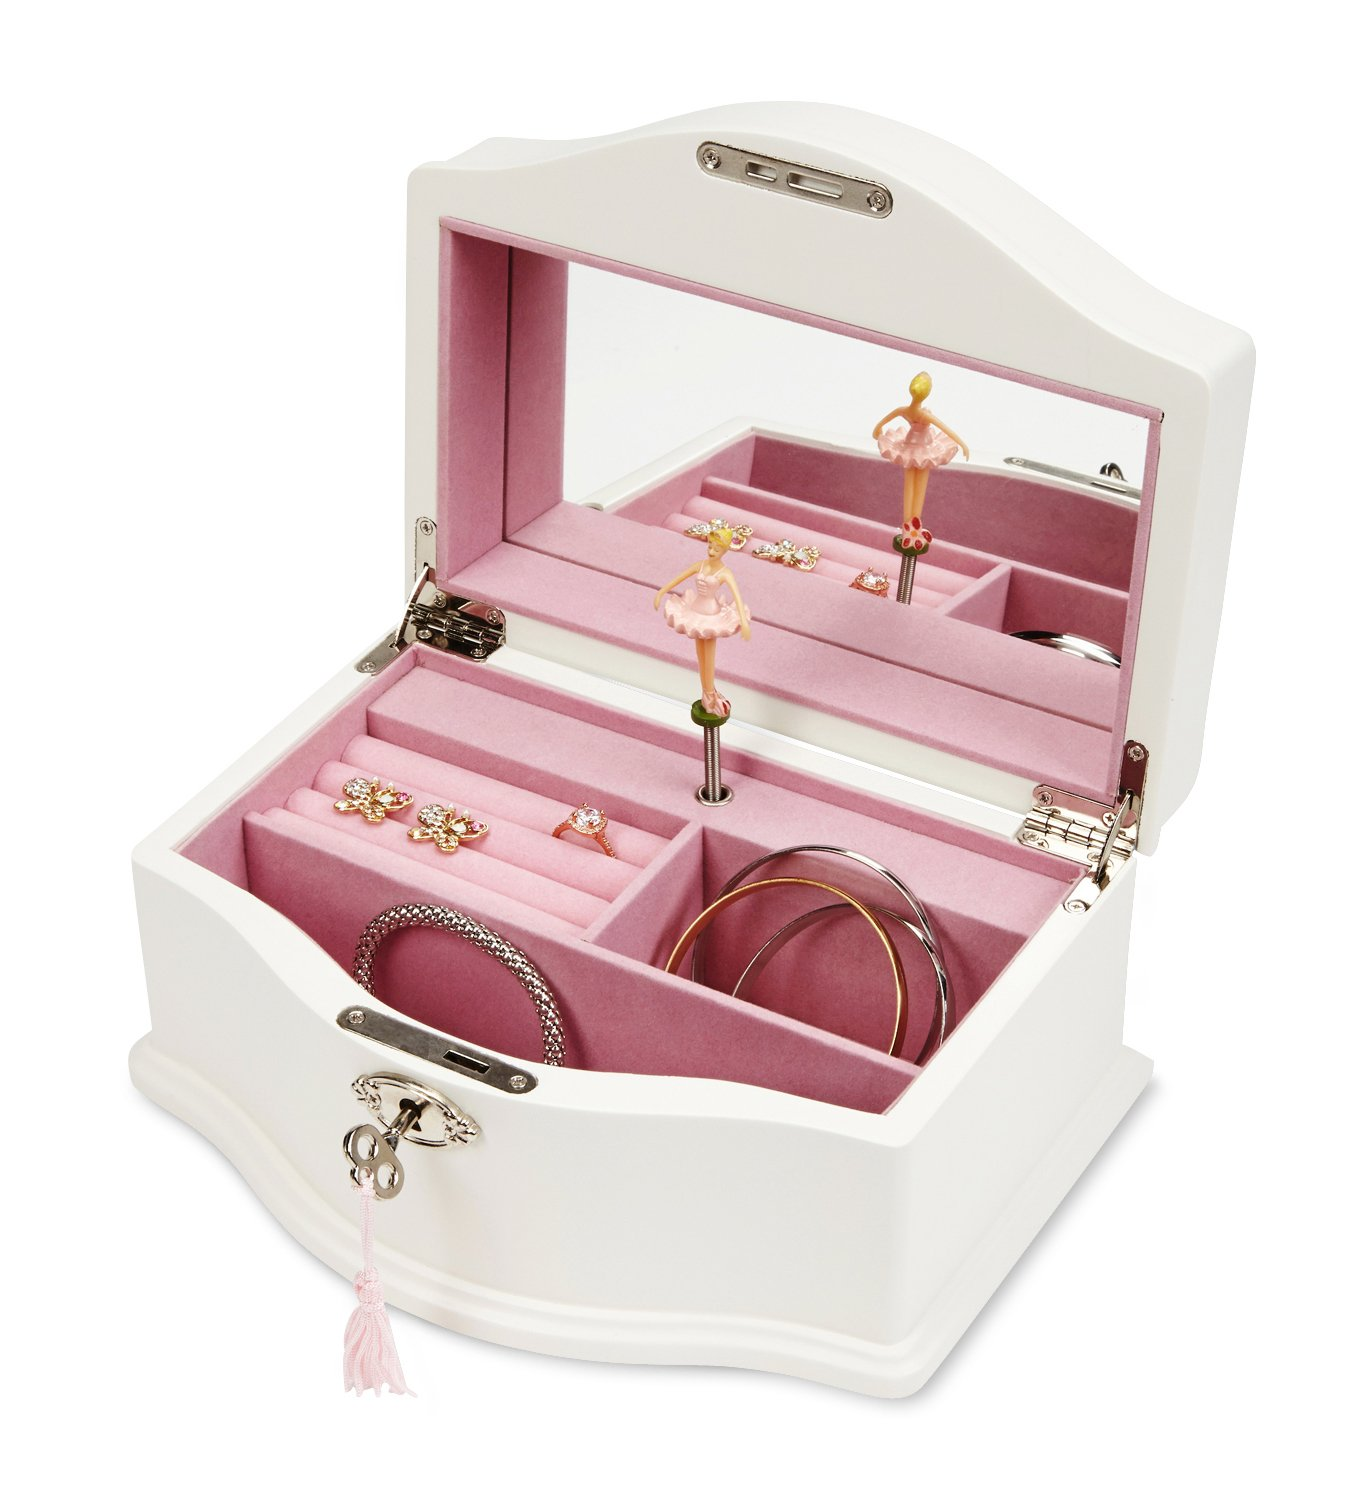 JewelKeeper Girls Wooden Musical Jewelry Box with Lock and Key, Classic Design with Ballerina and Mirror, Swan Lake Tune, White